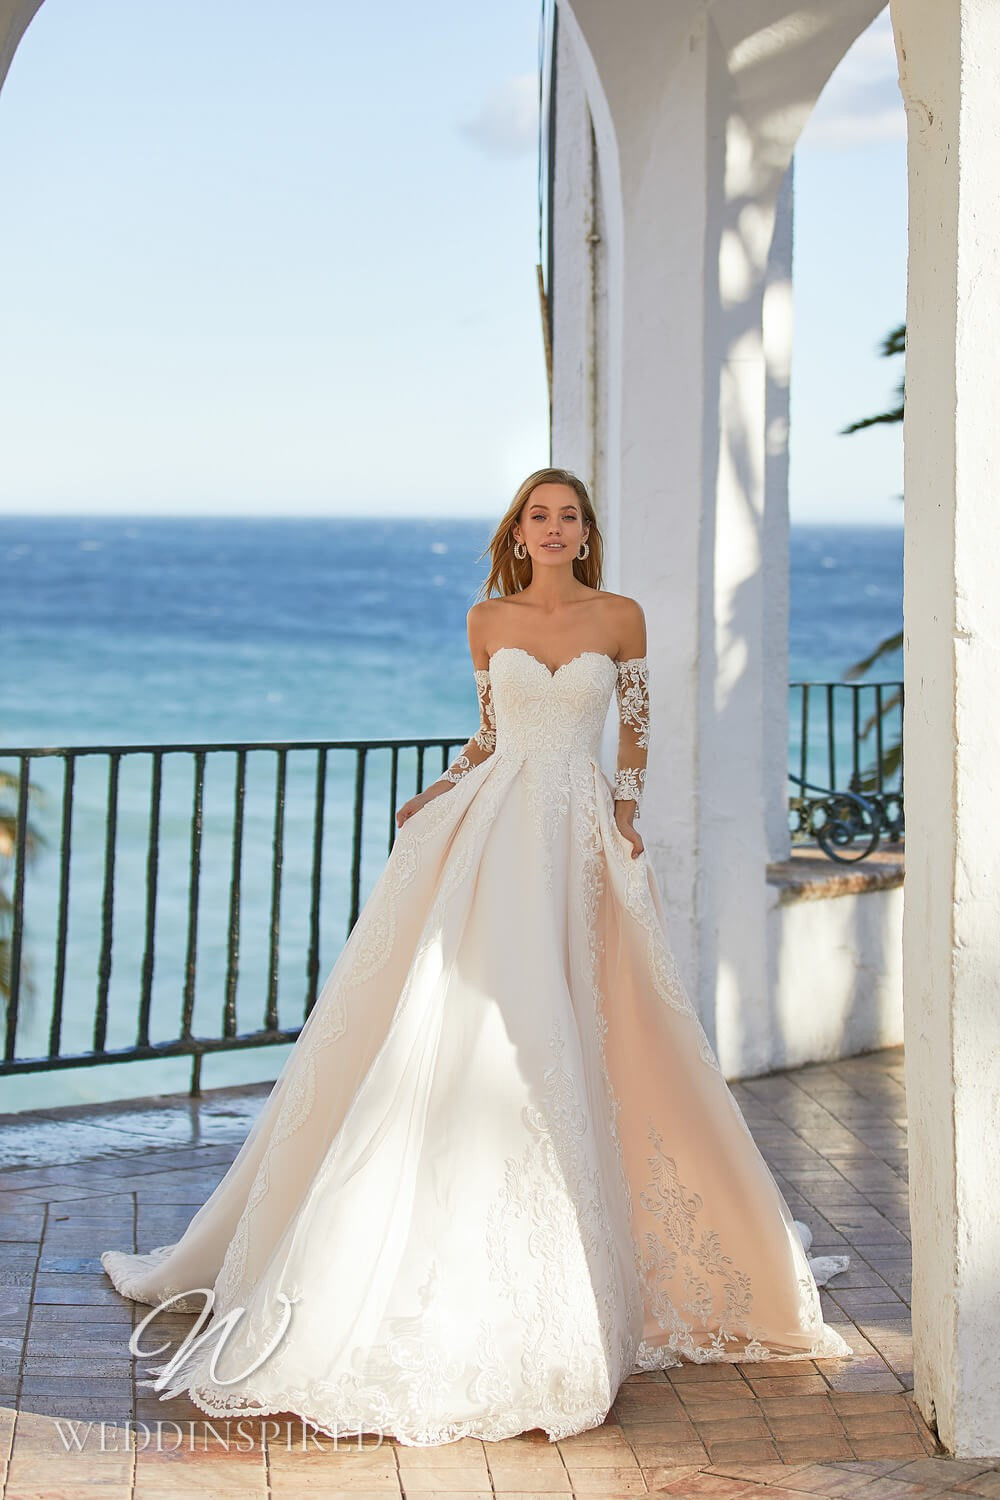 An Essential by Lussano 2021 blush strapless lace princess wedding dress